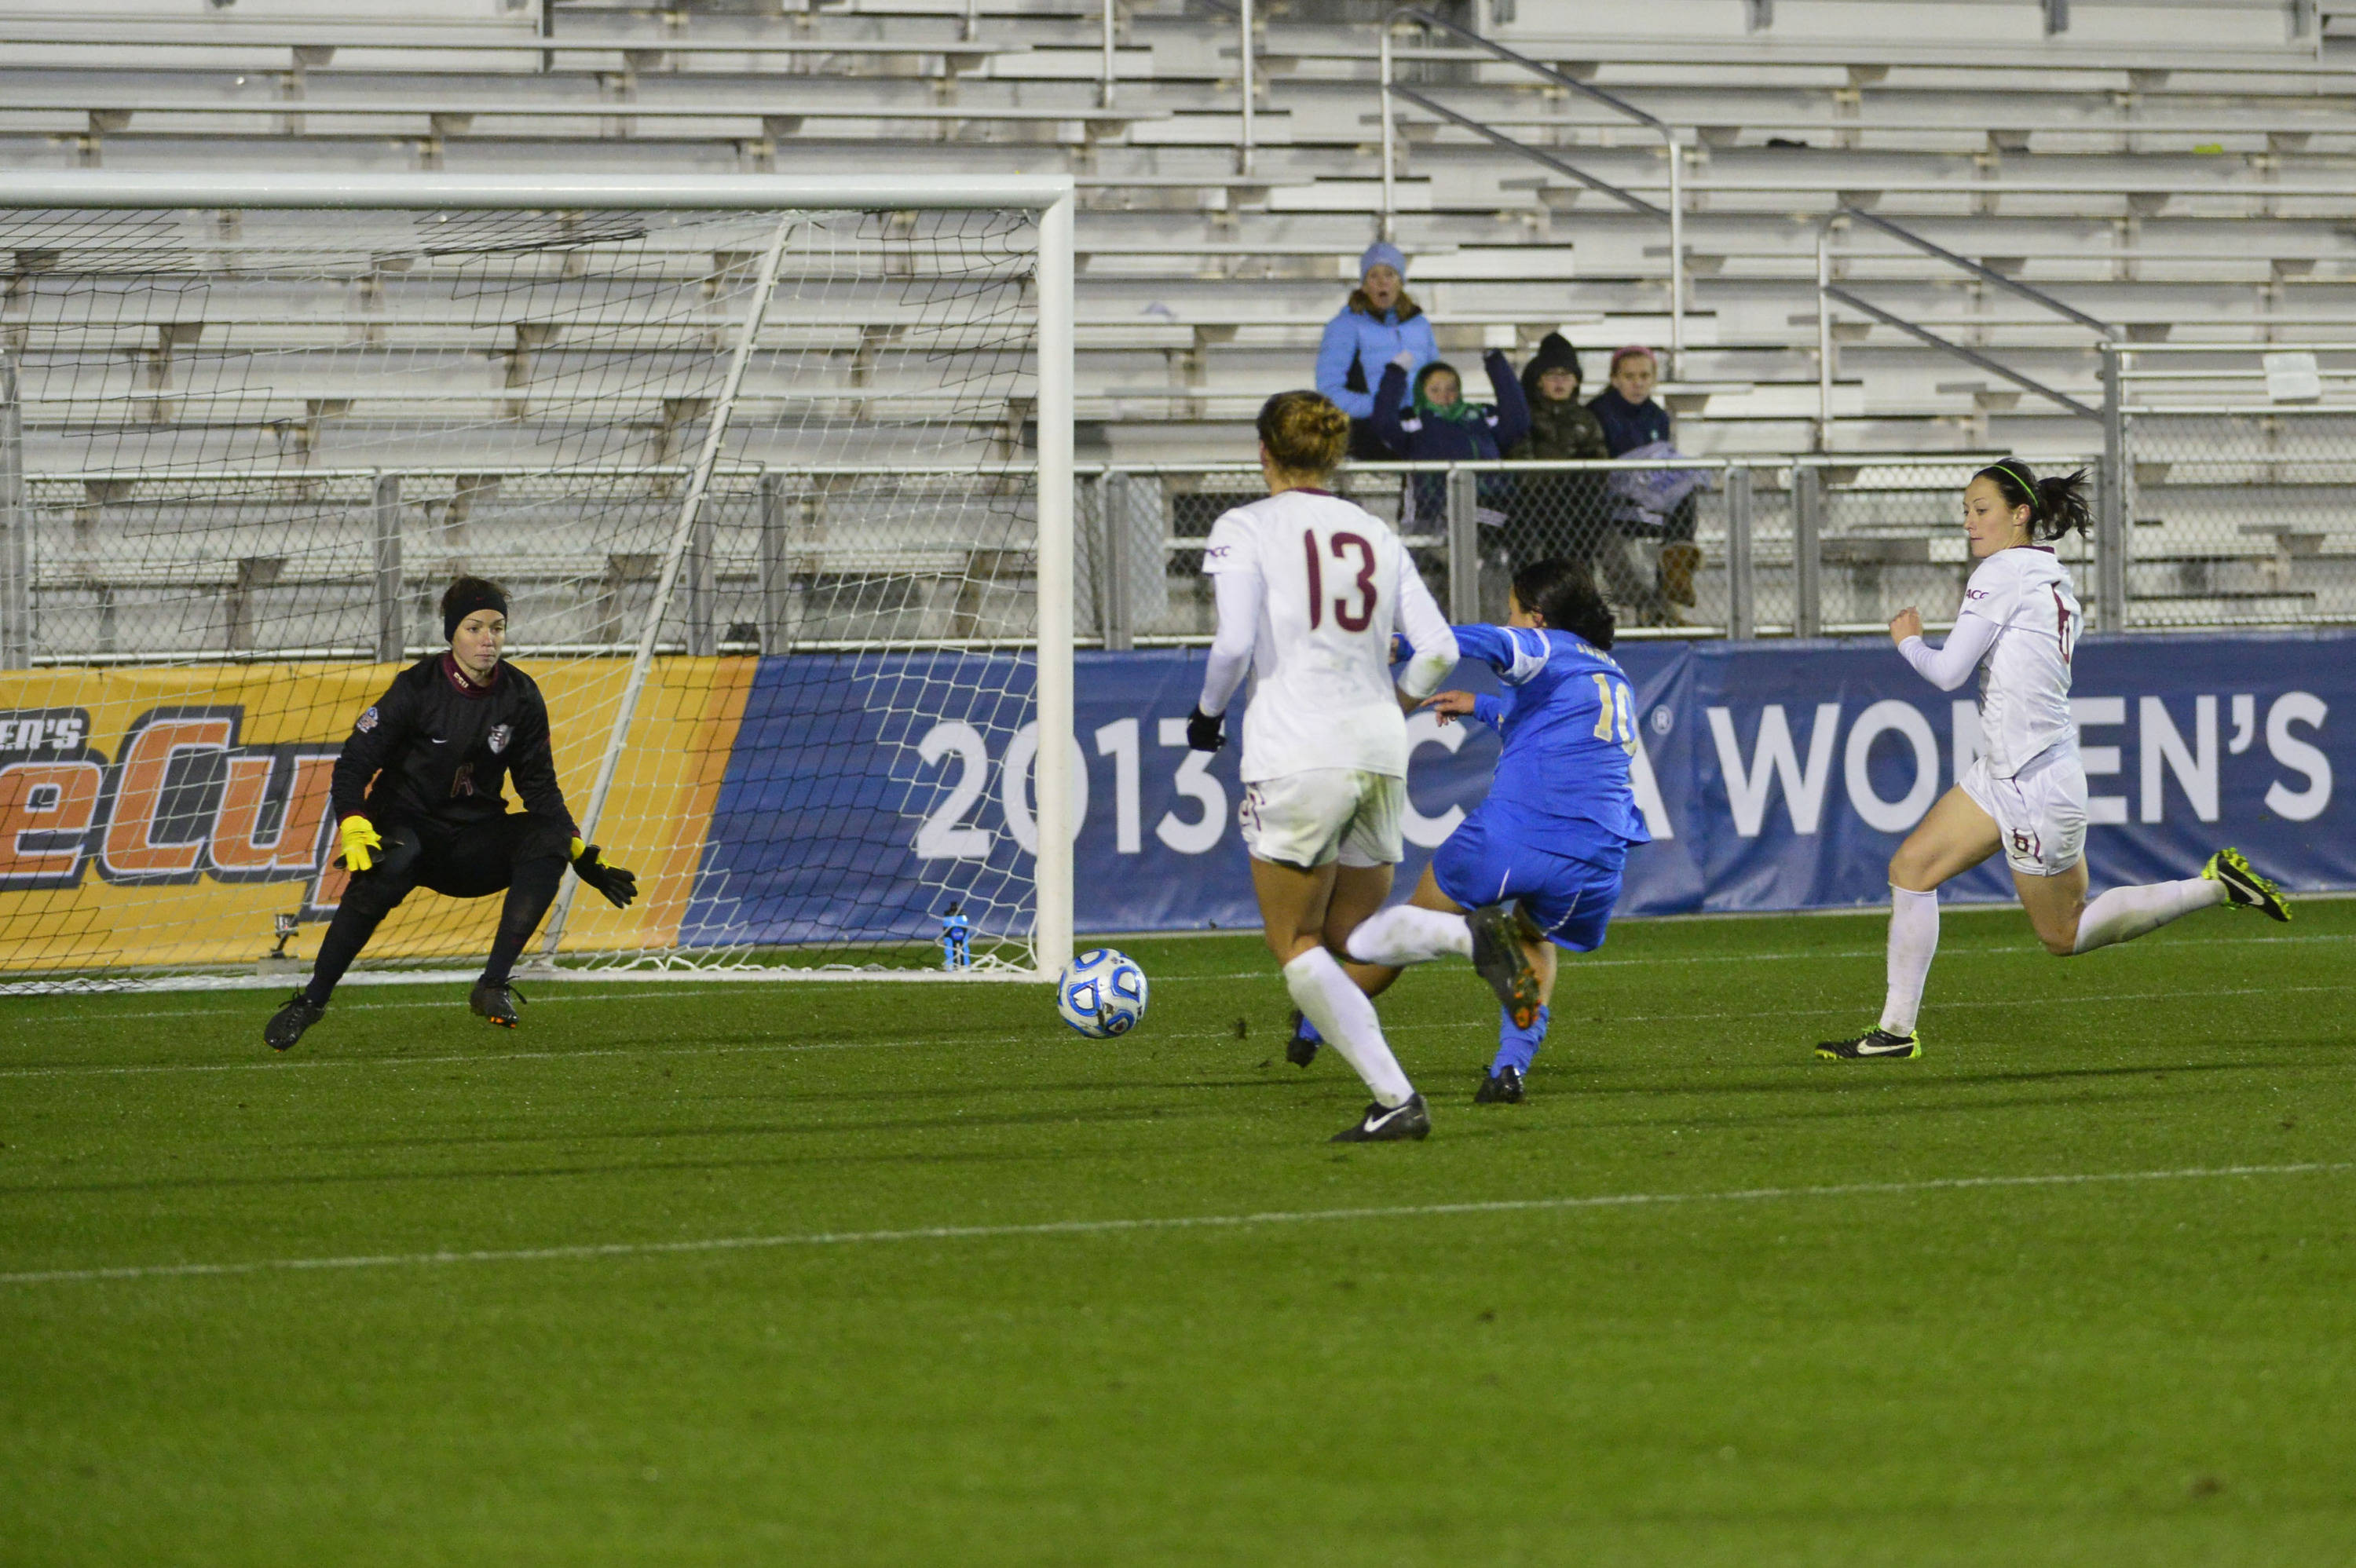 Dec 8, 2013; Cary, NC, USA; UCLA Bruins forward Kodi Lavrusky (10) scores the game winning goal in overtime as Florida State Seminoles goalkeeper Kelsey Wys (19) and defender/midfielder Kristin Grubka (13) and defender Megan Campbell (6) defend. The Bruins defeated the Seminoles 1-0 in overtime at WakeMed Soccer Park. Mandatory Credit: Bob Donnan-USA TODAY Sports